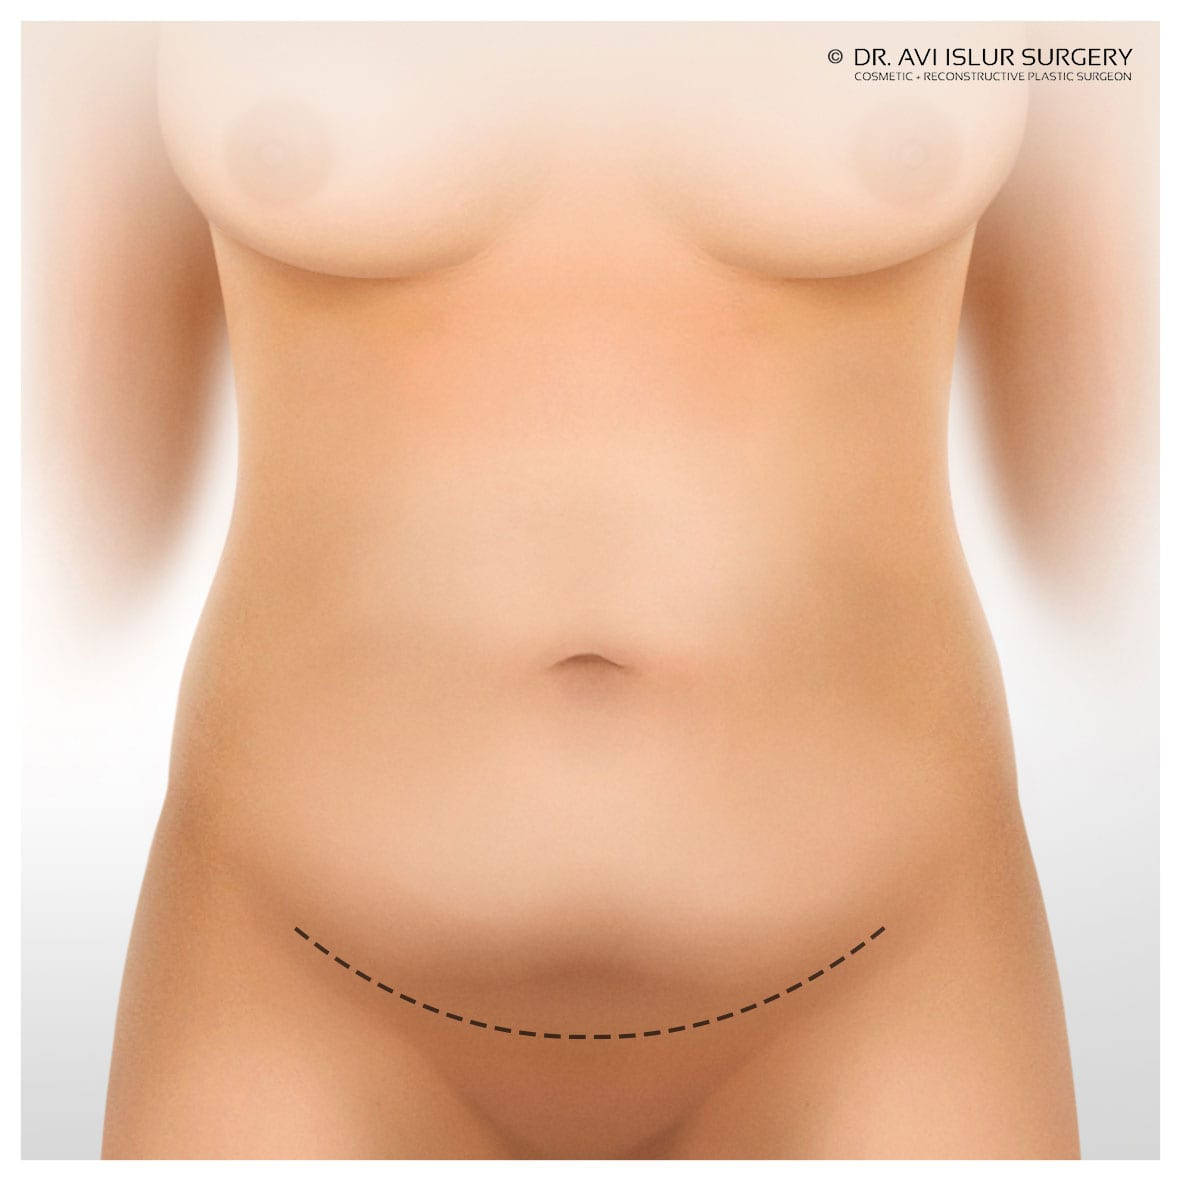 Mini Tummy tuck incision lines